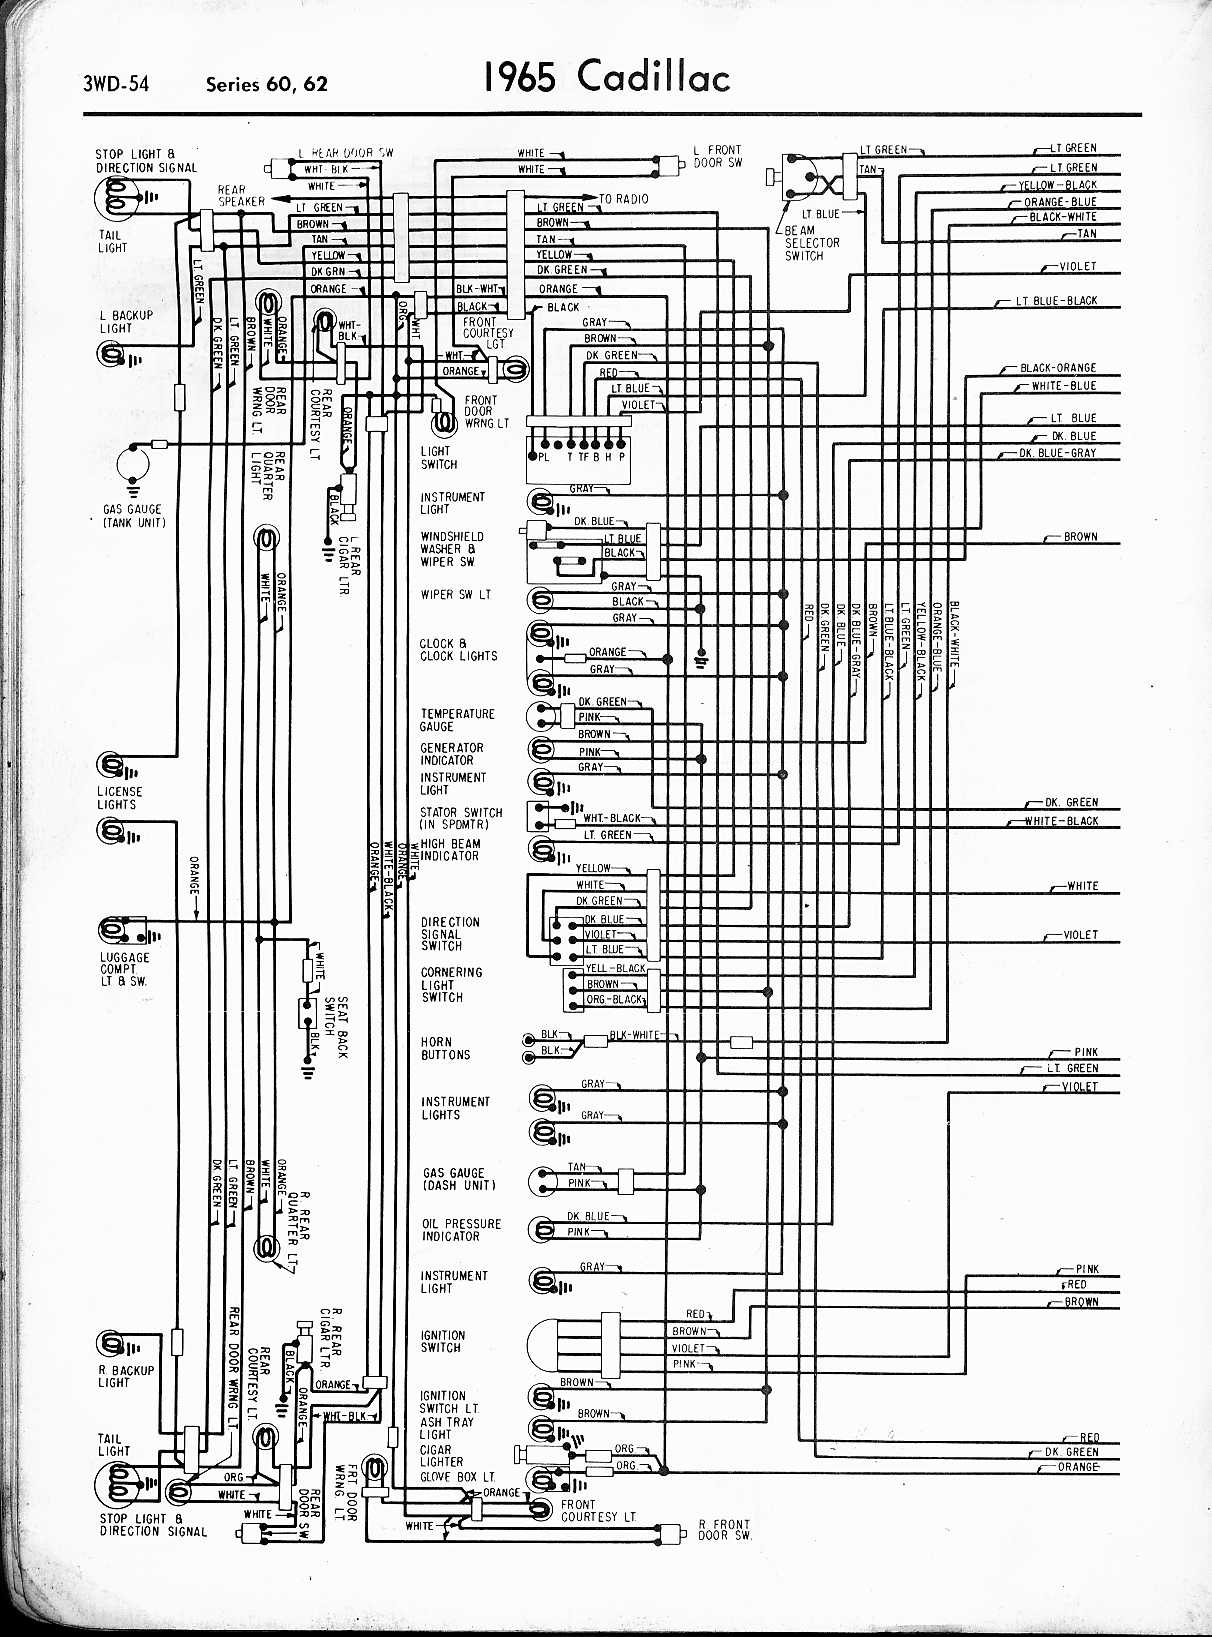 1963 Cadillac Wiring Diagram Reinvent Your 1961 Chrysler Diagrams 1957 1965 Rh Oldcarmanualproject Com Coupe